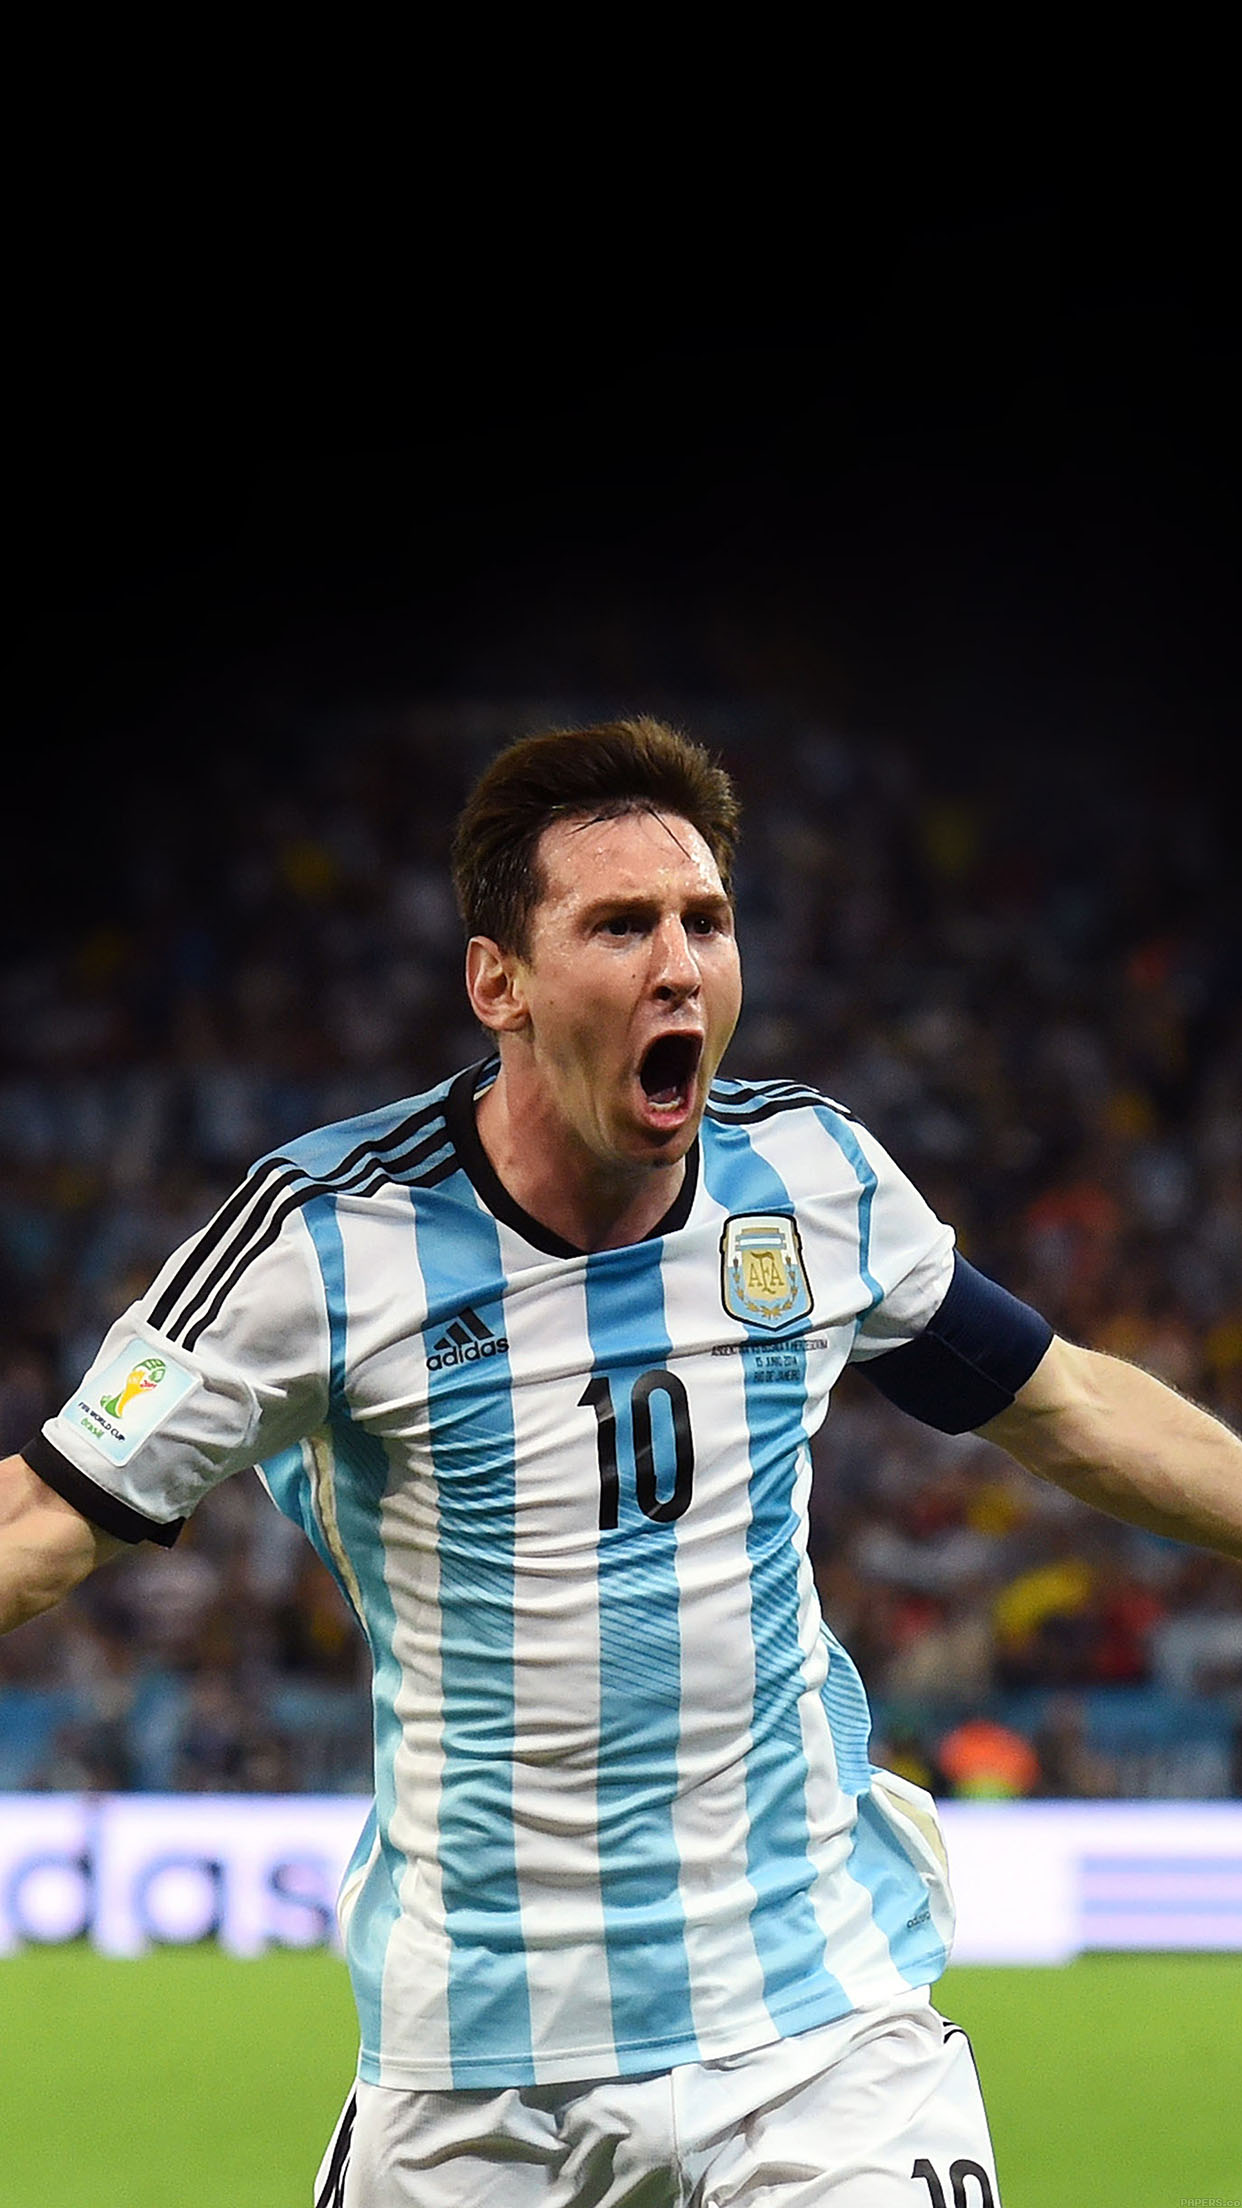 Messi Brazil Worldcup Goal Face Sports Art Android wallpaper